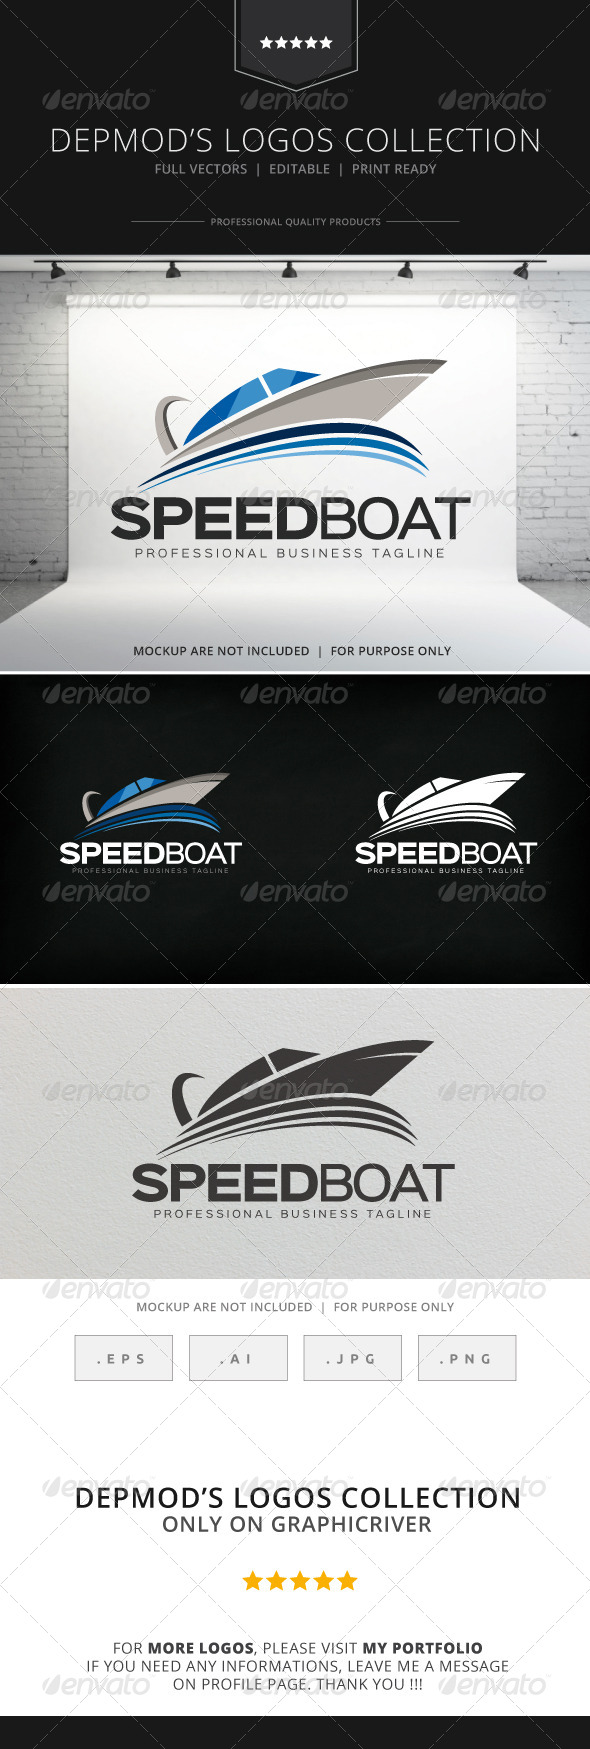 GraphicRiver Speedboat Logo 8568830